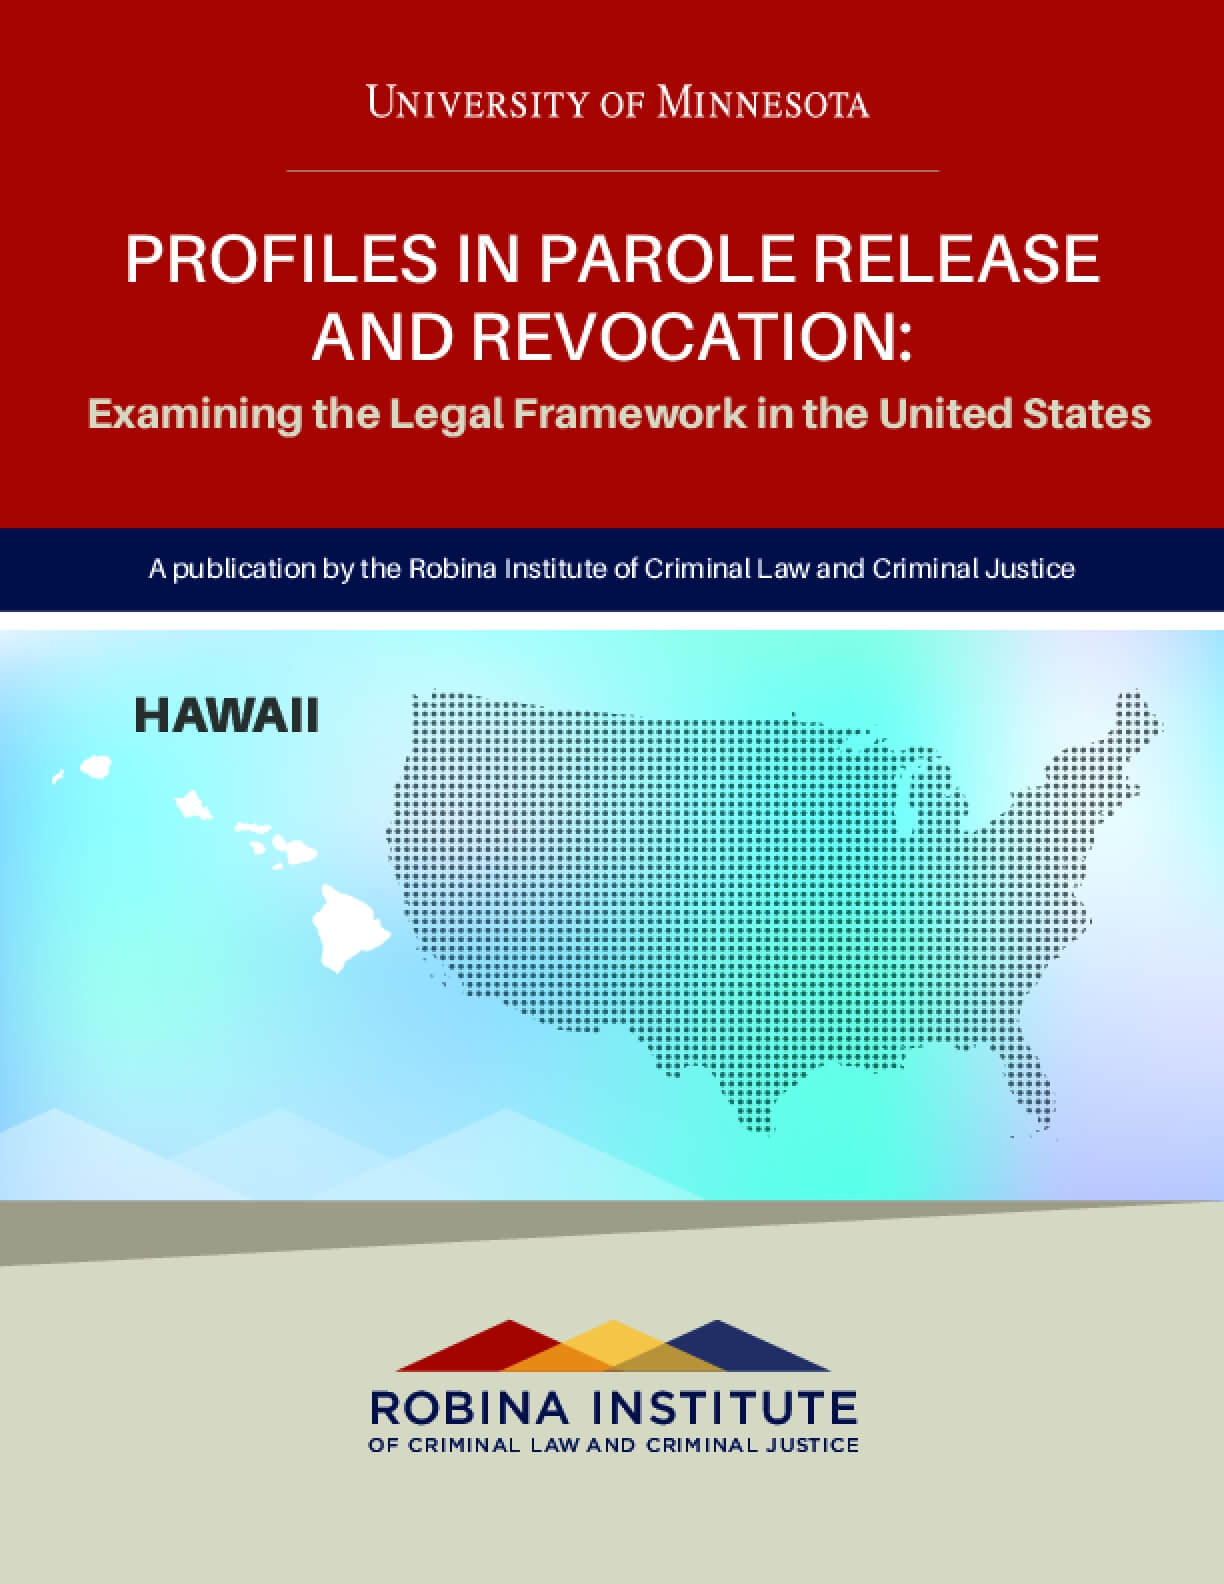 Profiles in Parole Release and Revocation Hawaii